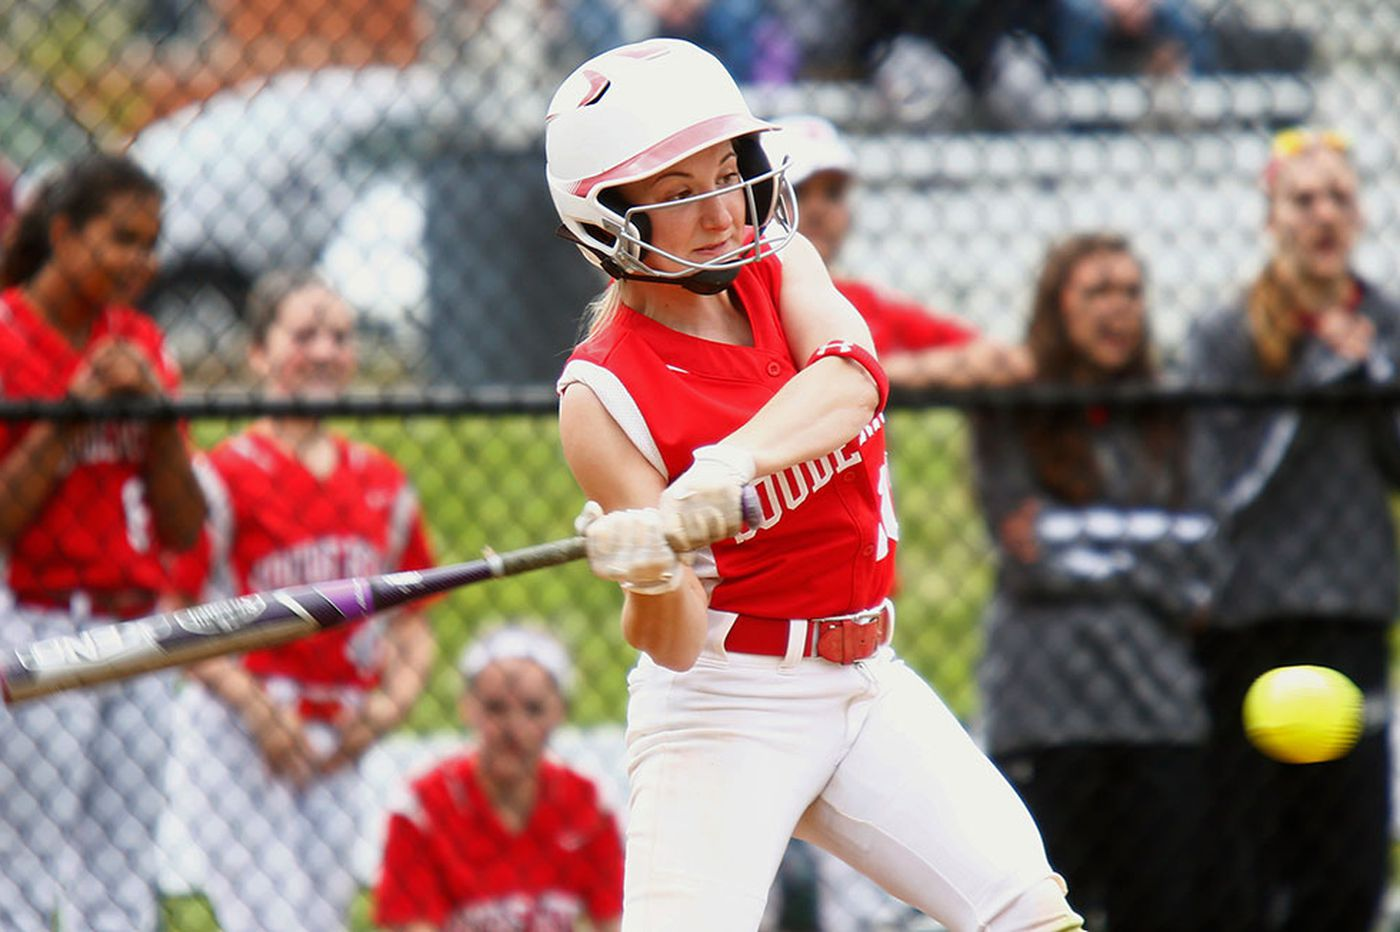 Thursday's Southeastern Pa. roundup: String Theory softball tops Marianna Bracetti in Public League playoffs